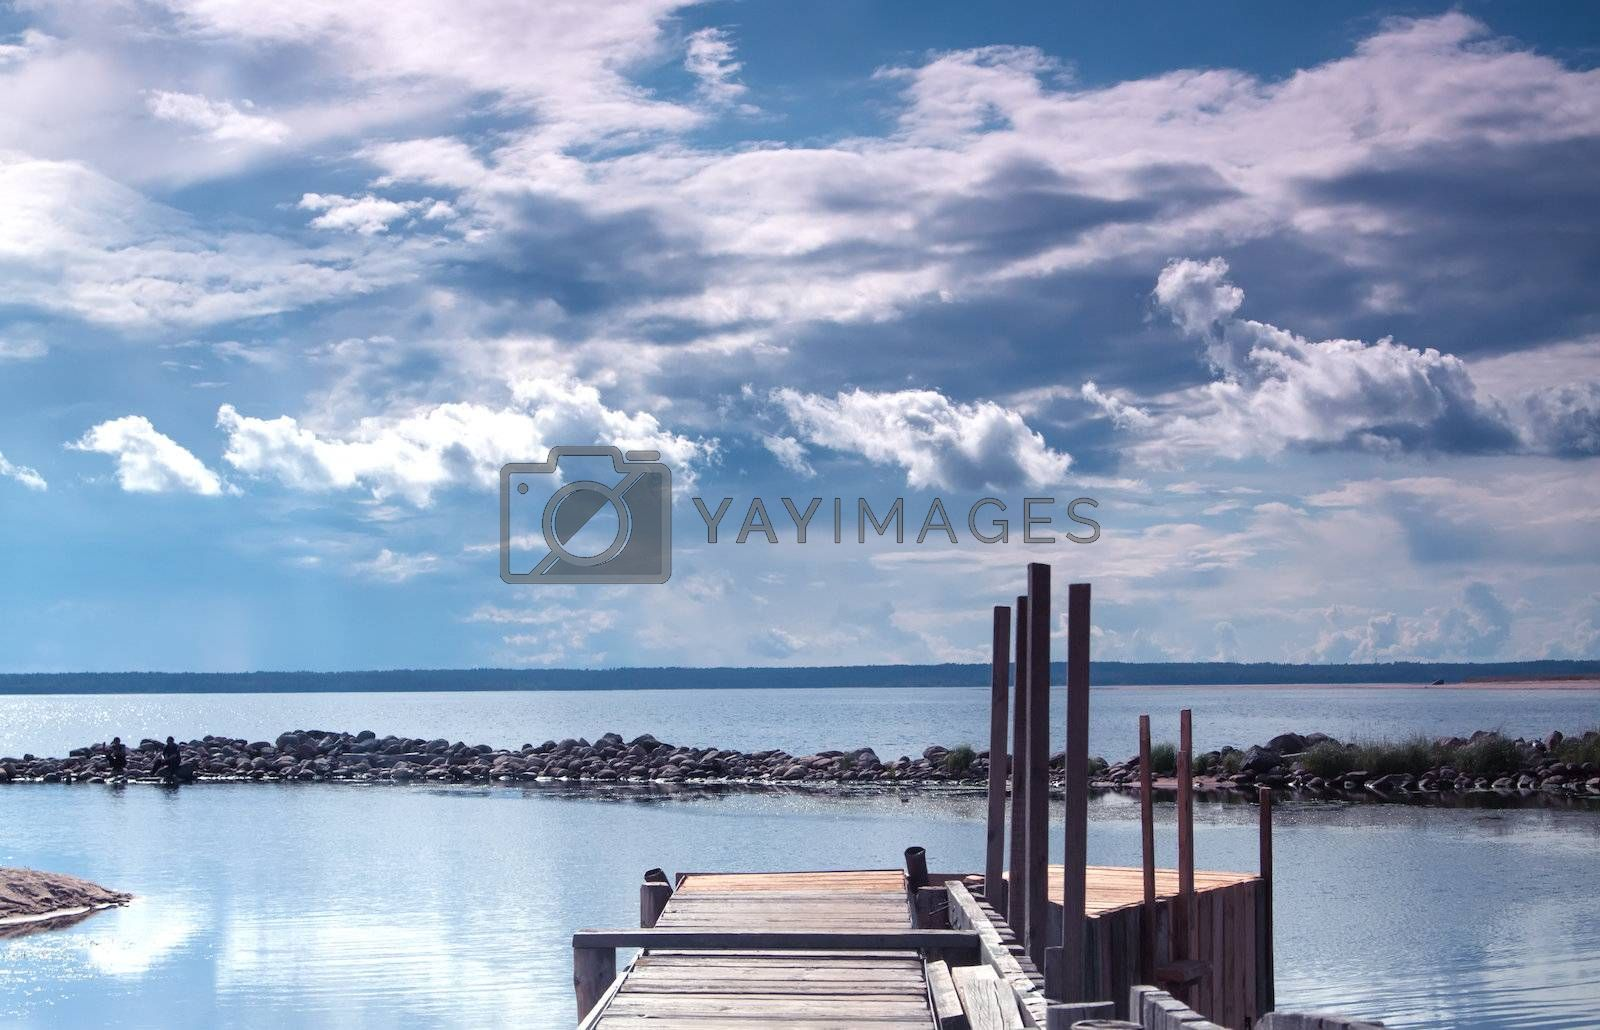 Royalty free image of Old wooden pier by Edoma